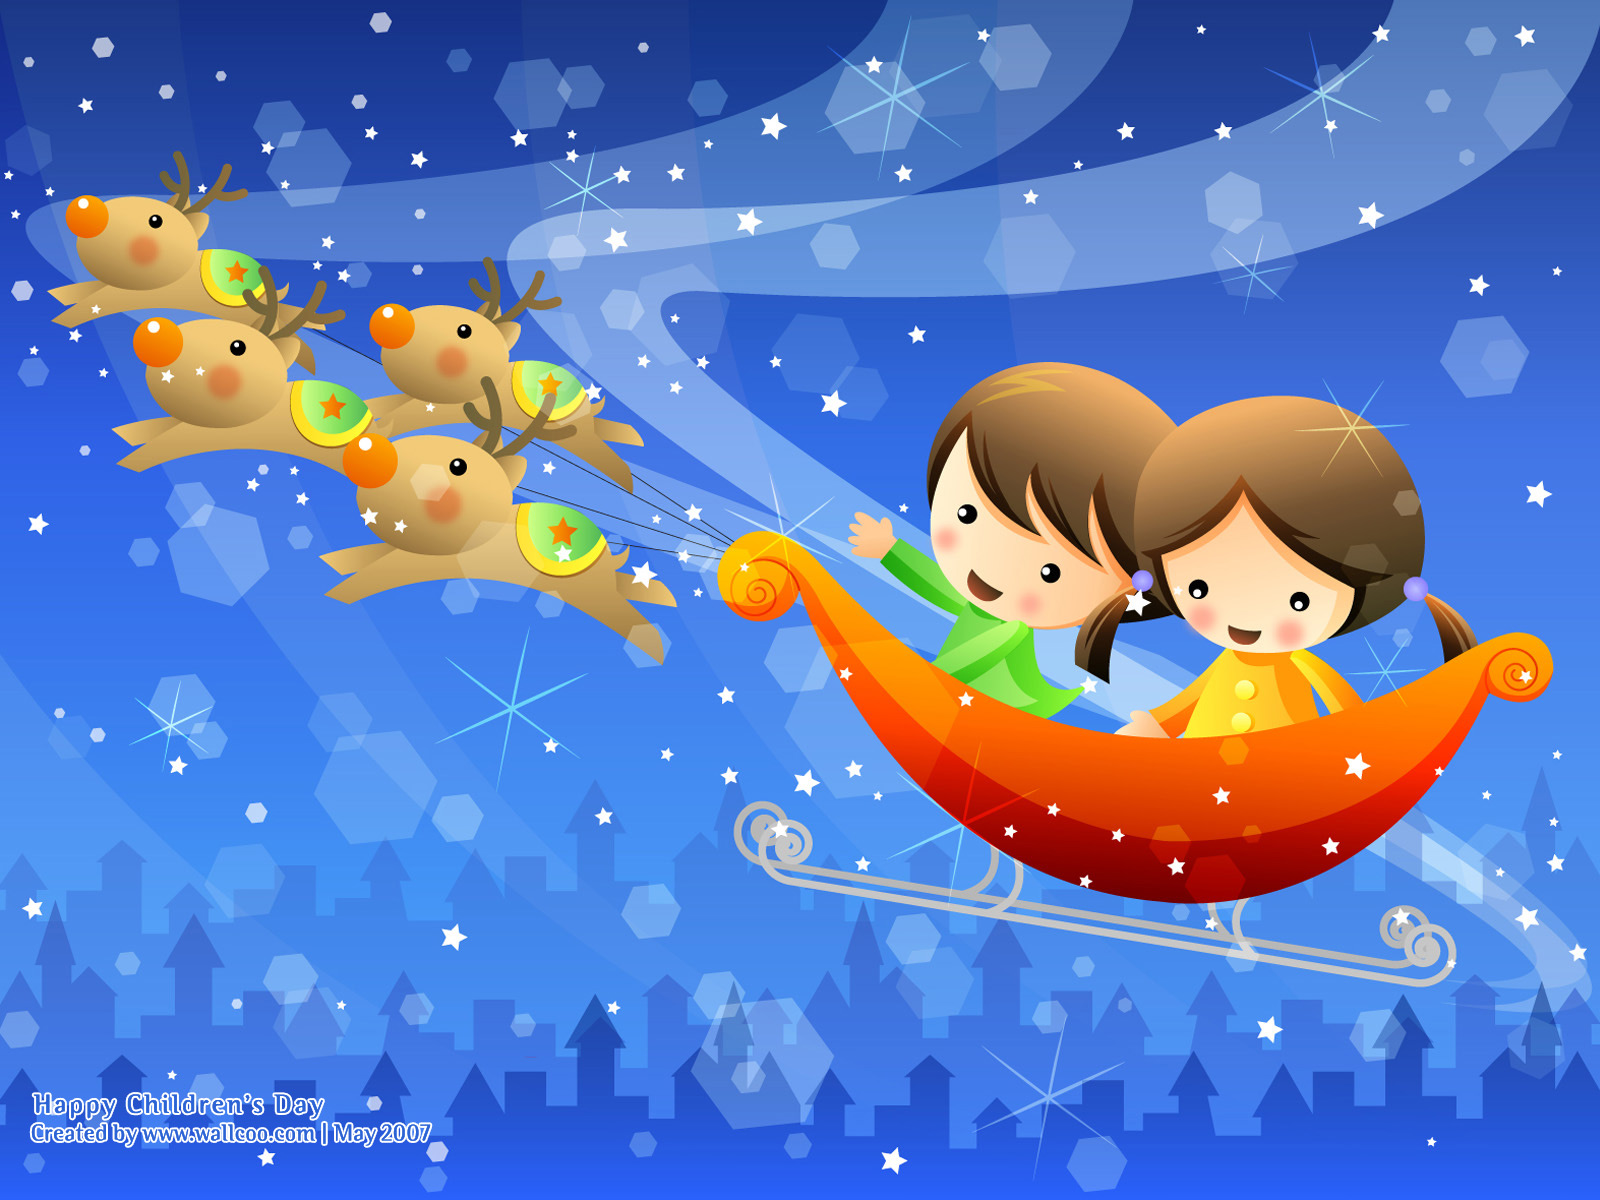 Colourful Illustrations for Children's Day 1600*1200 NO.10 Wallpaper